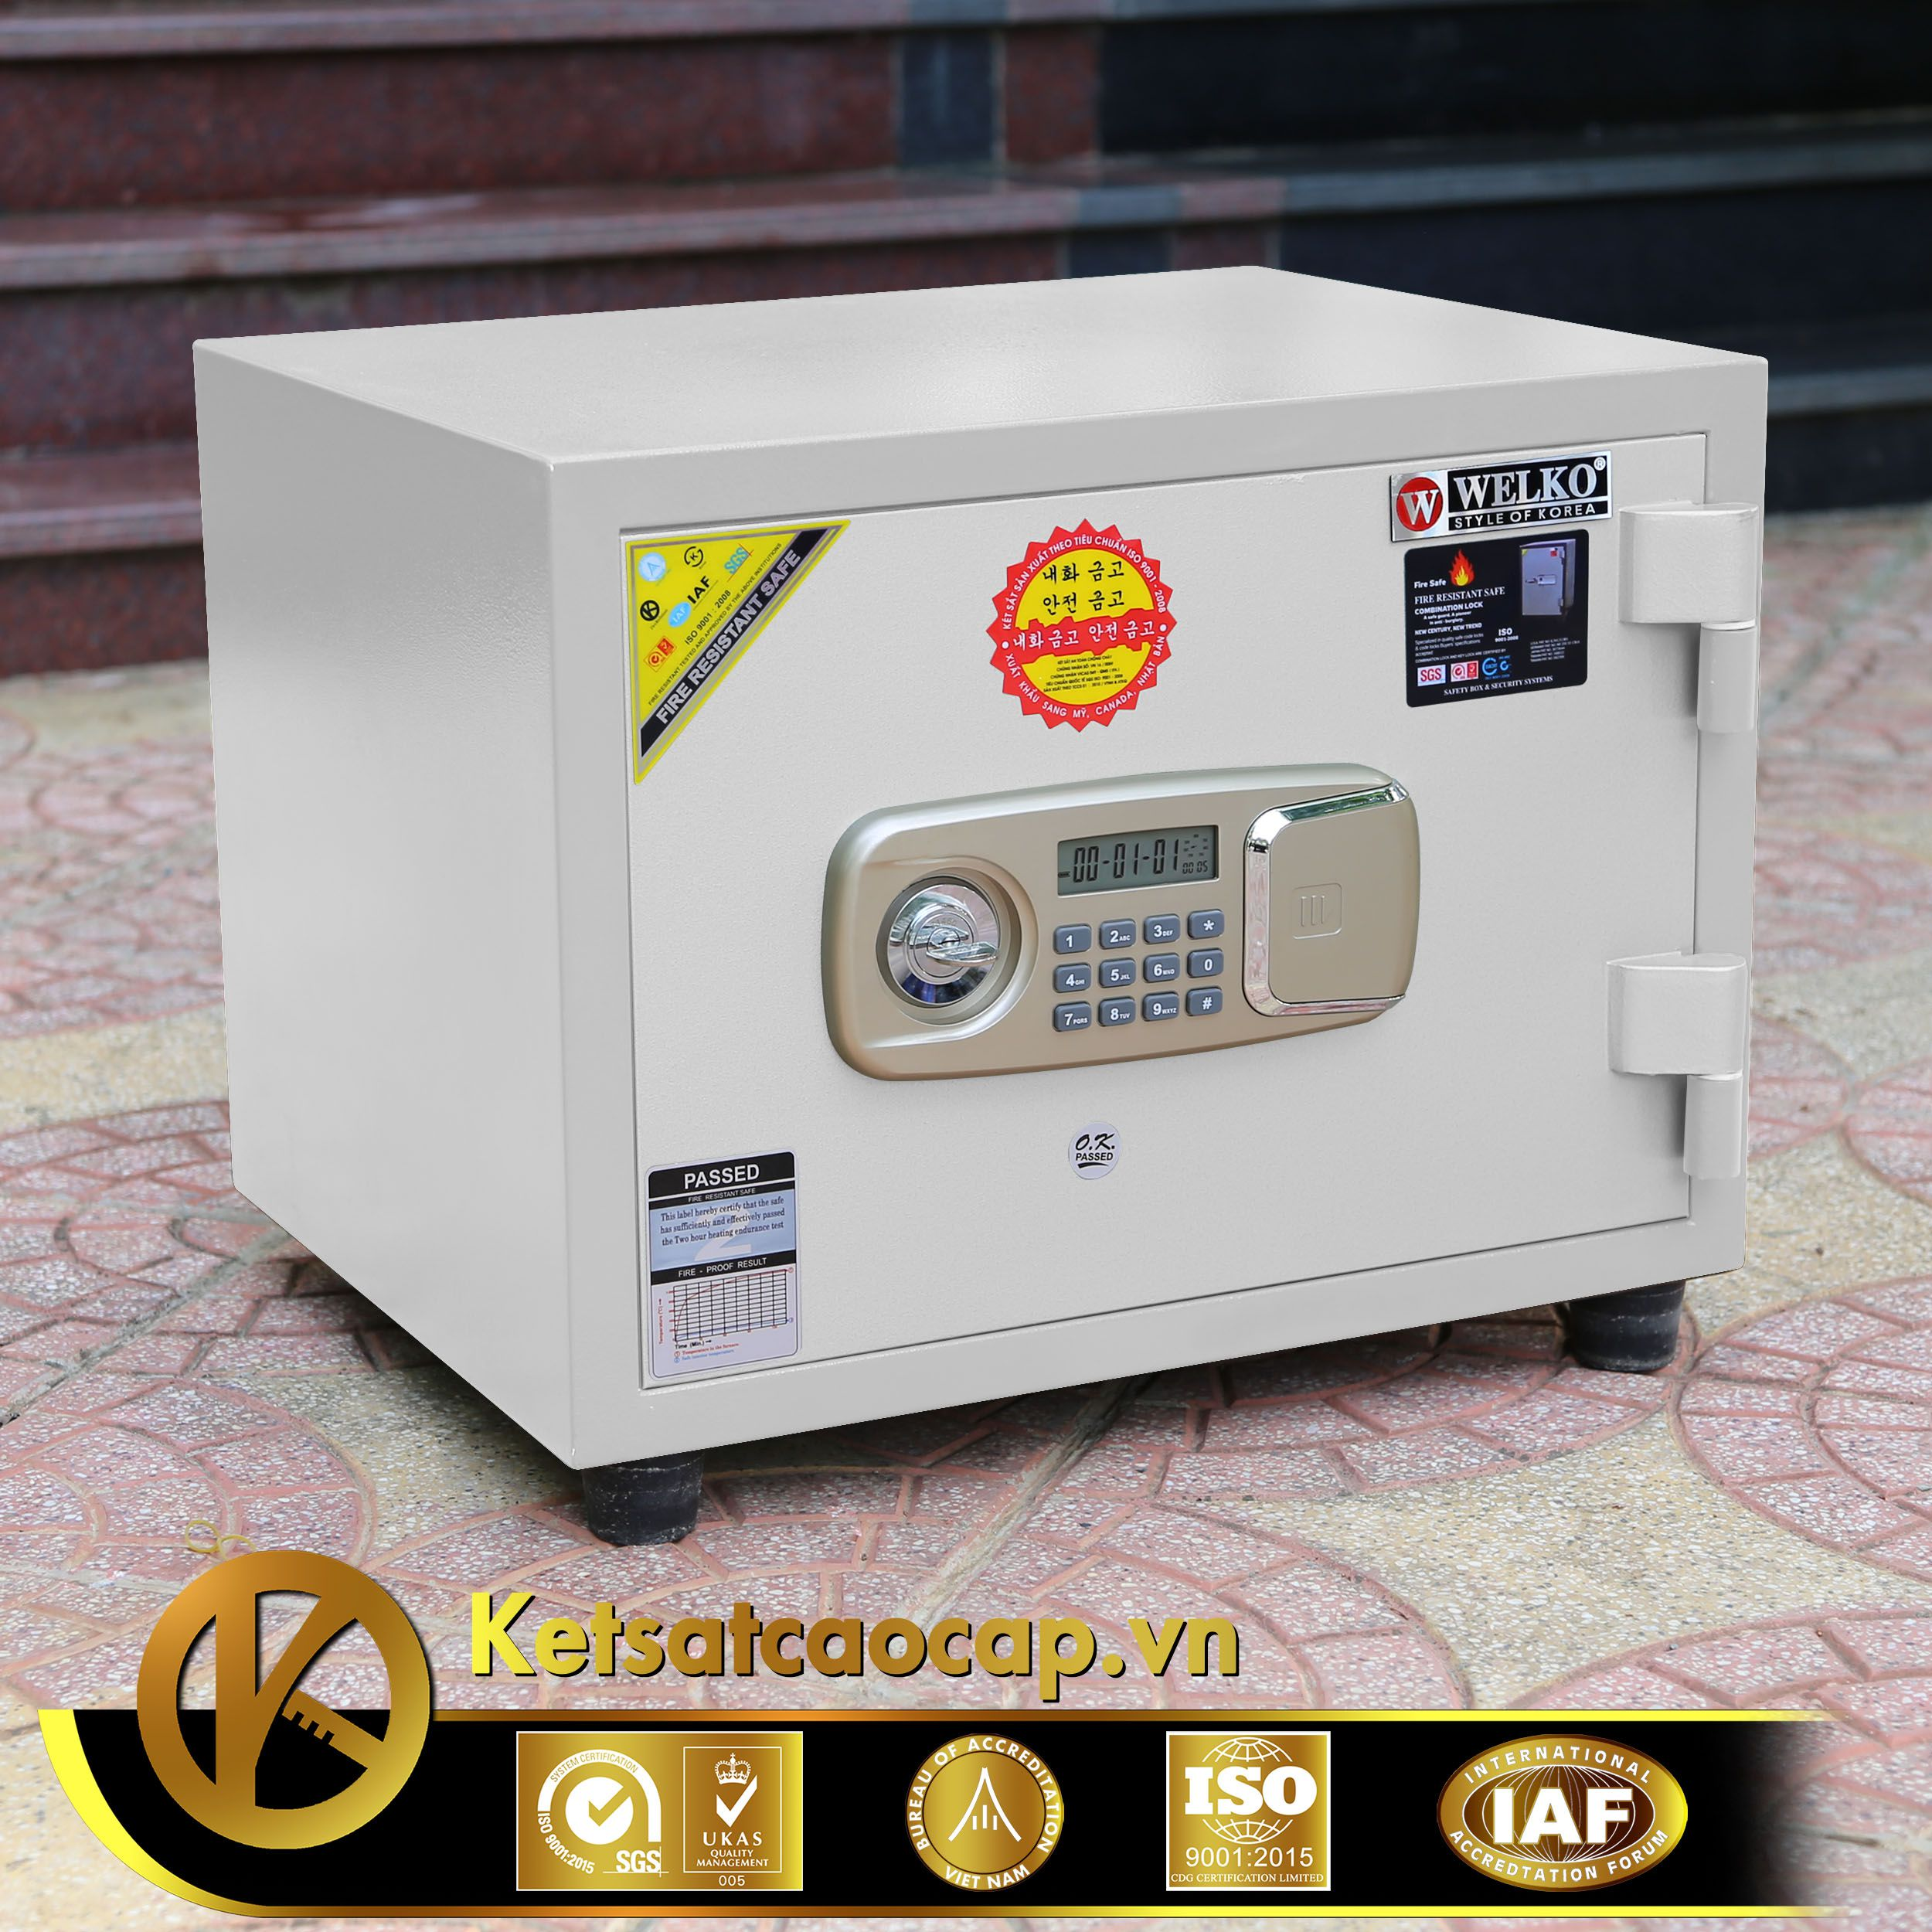 cach doi ma ket sat chinh hang WELKO Fire Resistant Safes